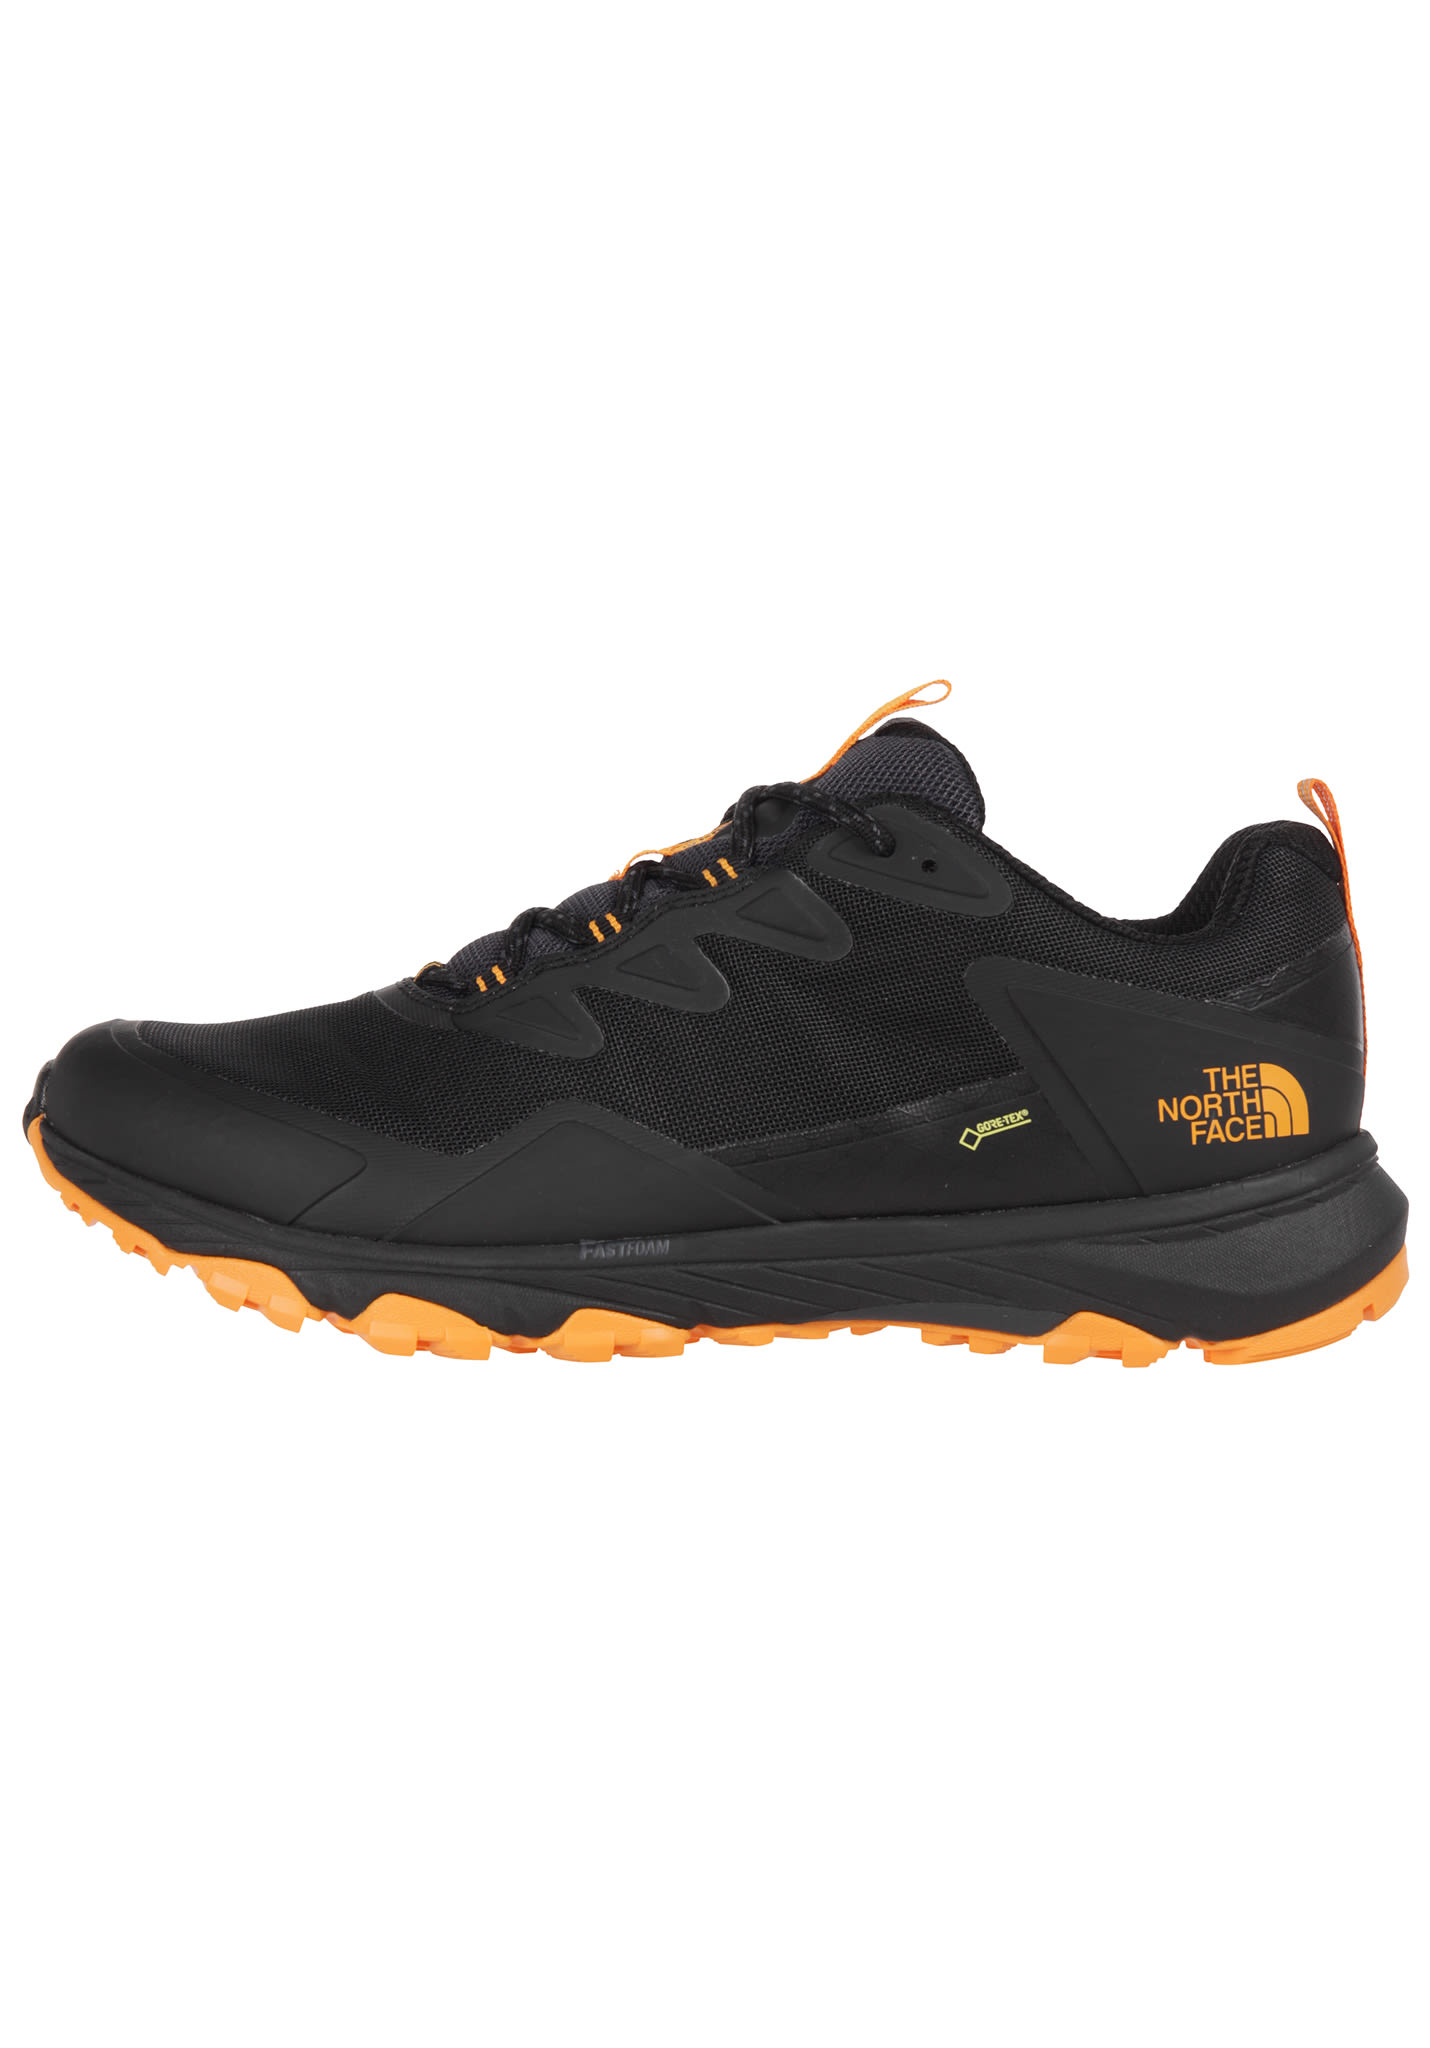 67f8c4923 THE NORTH FACE Ultra Fastpack III GTX - Trekking Shoes for Men - Black